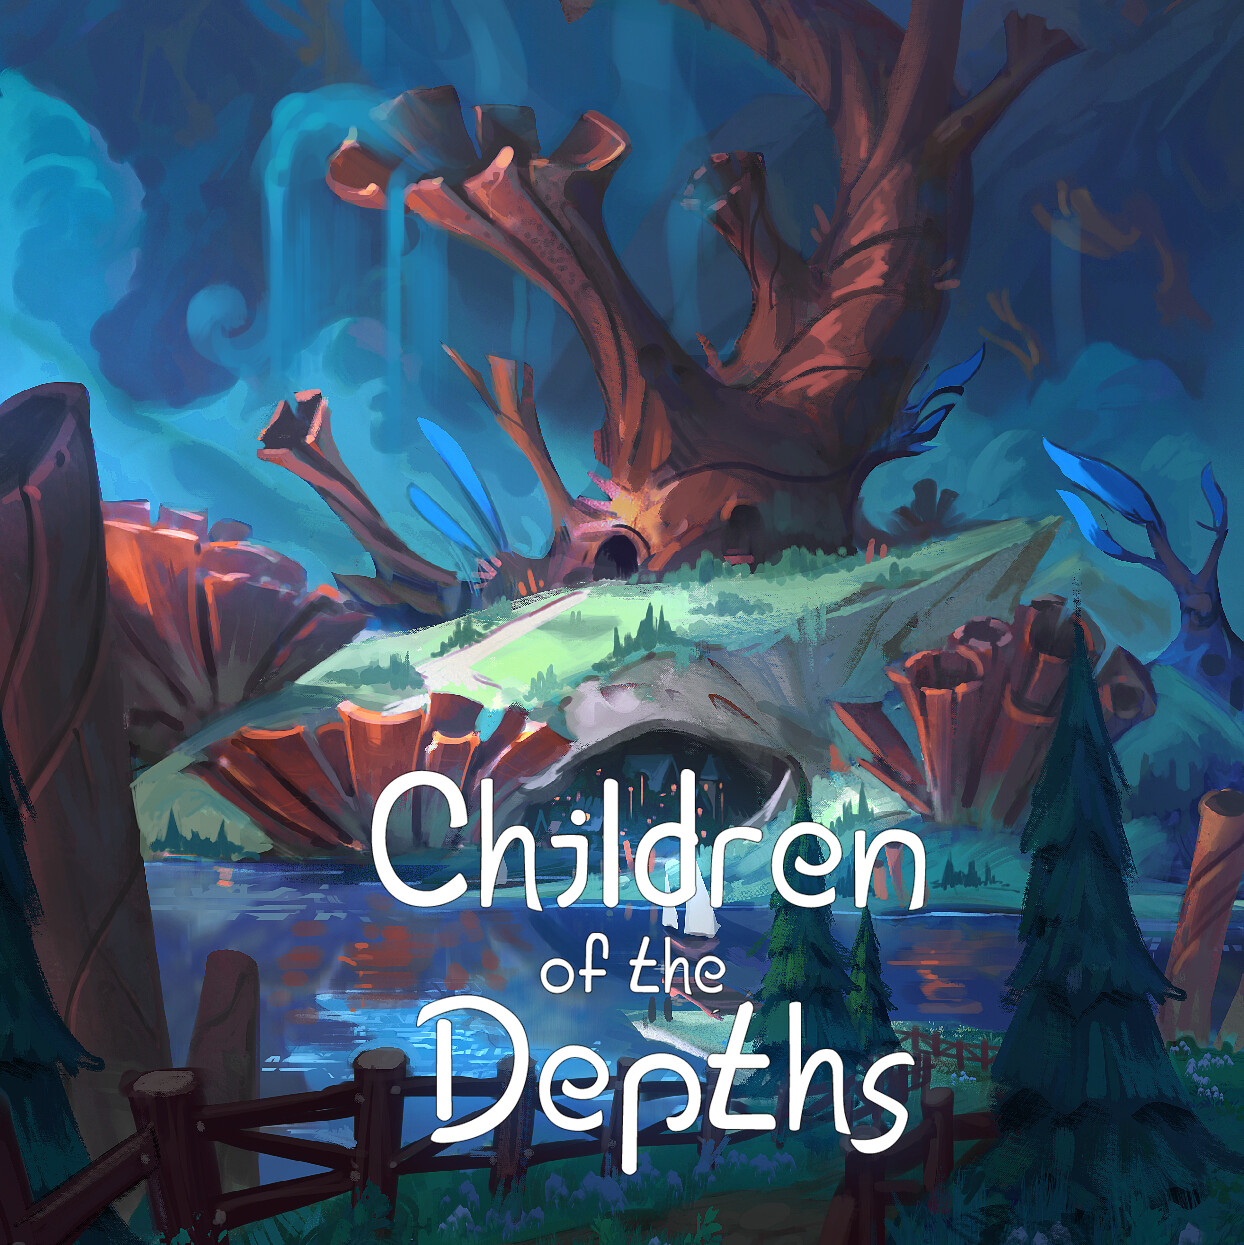 Children of the depths - Coral town